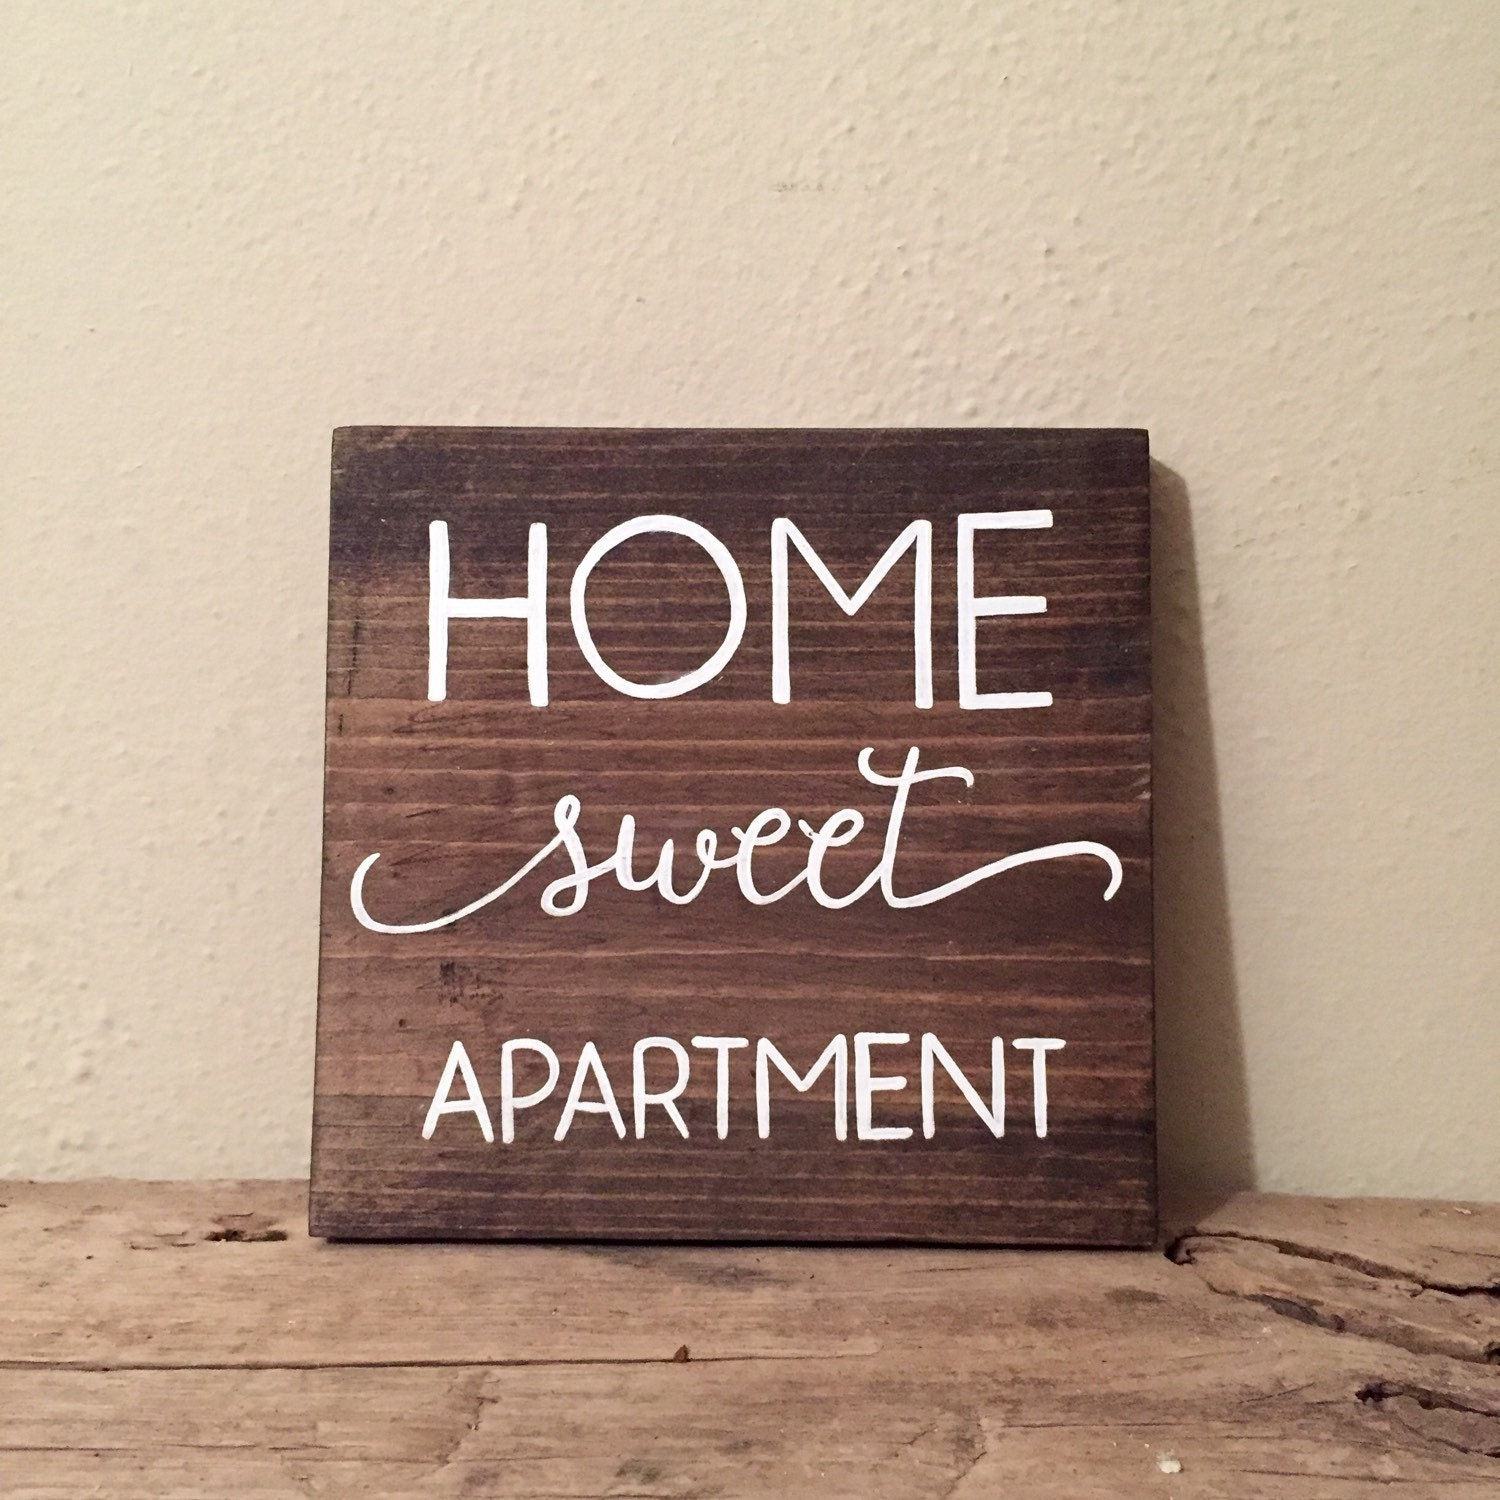 Wooden Signs Home Decor: Home Sweet Apartment Wood Sign Apartment Decor By WiscoFarms